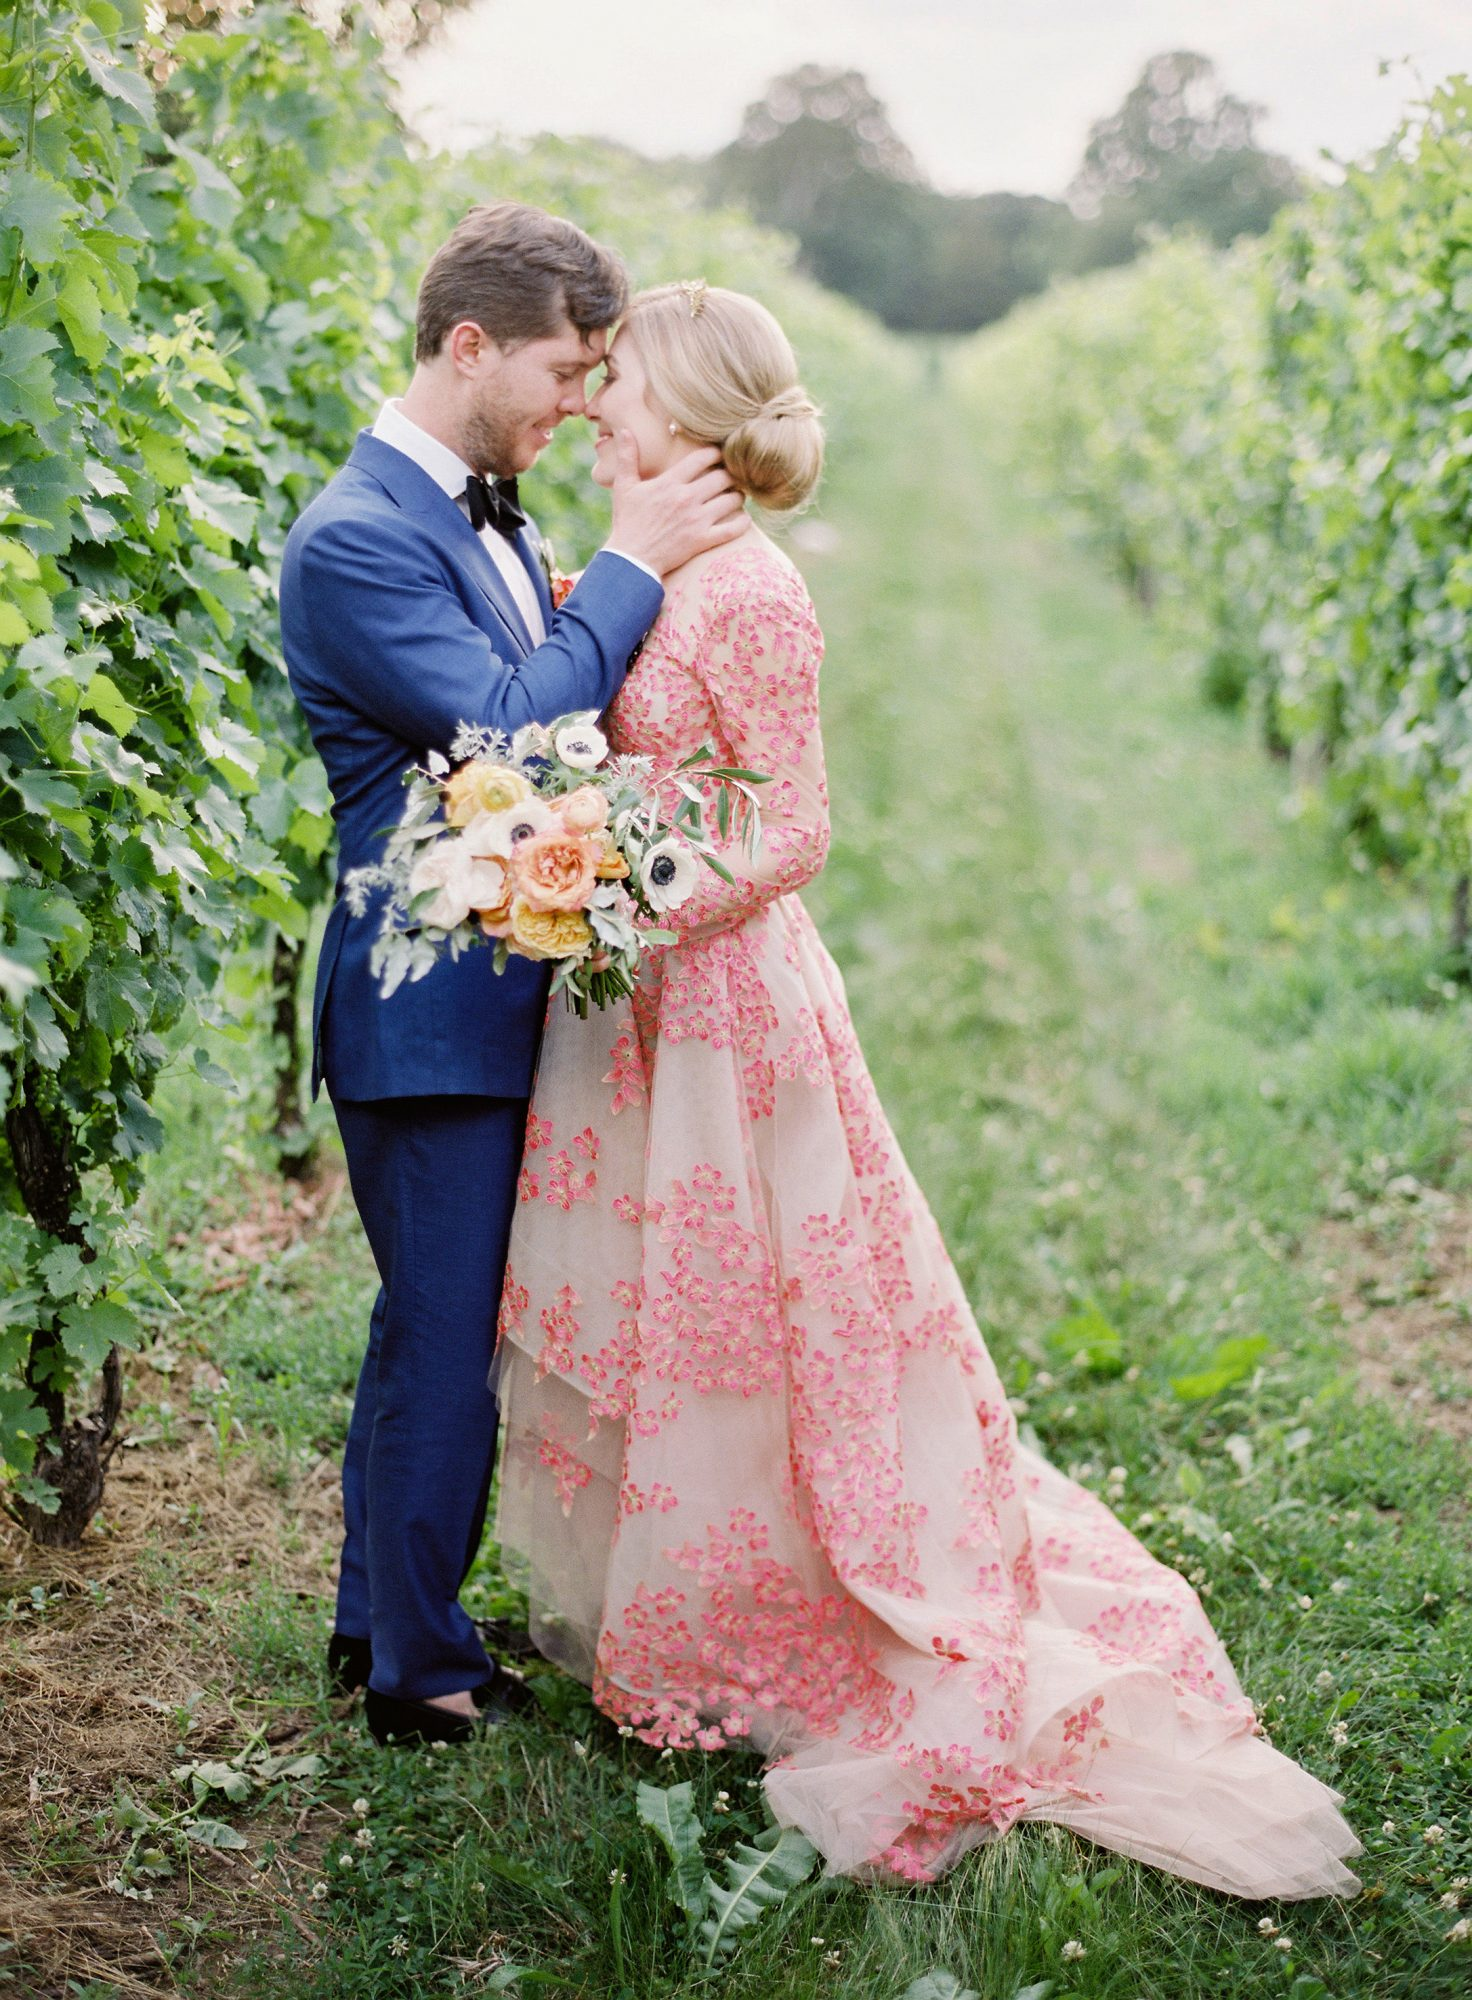 Nontraditional Long-Sleeved Wedding Dress